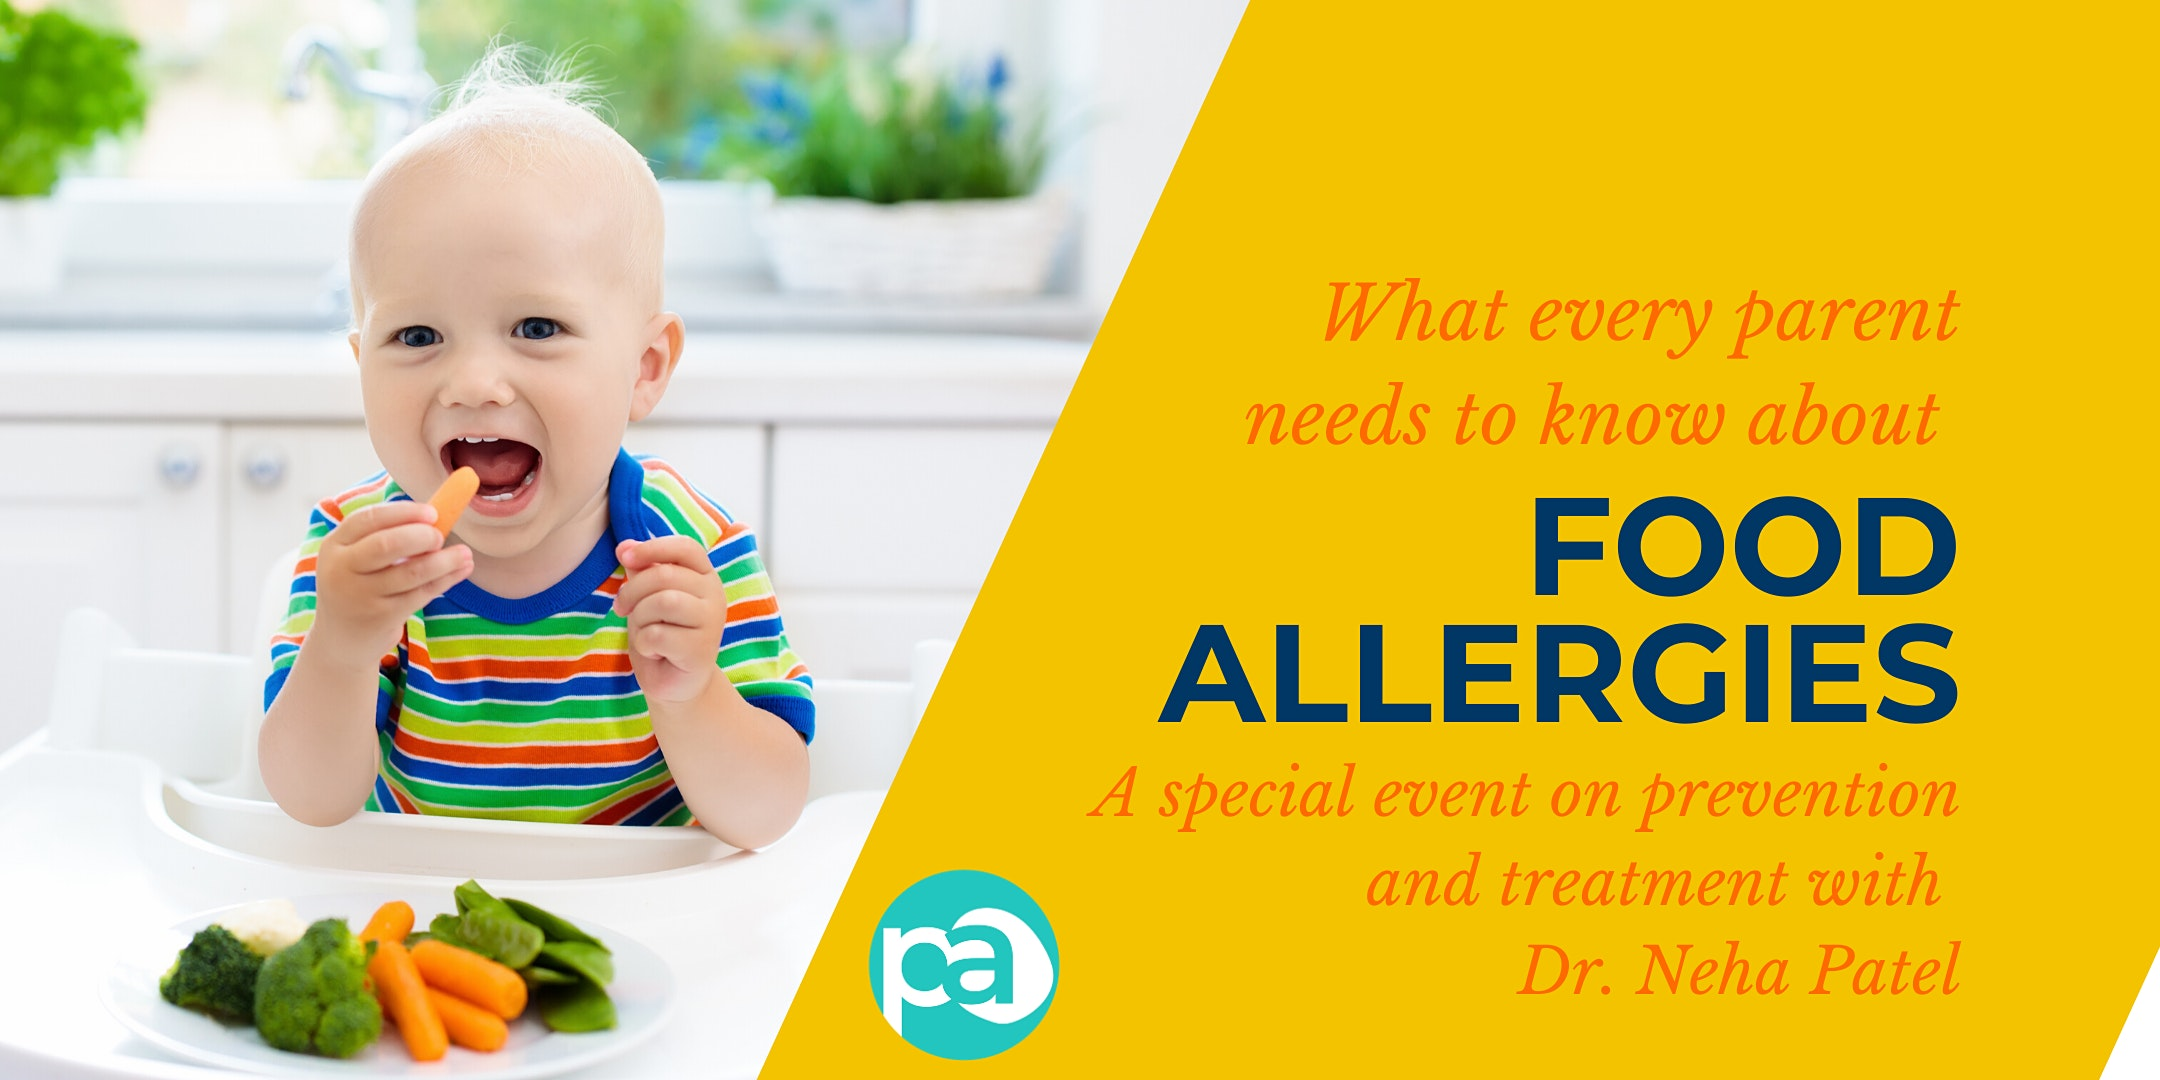 Food Allergy Prevention and Treatment: What Parents Need to Know